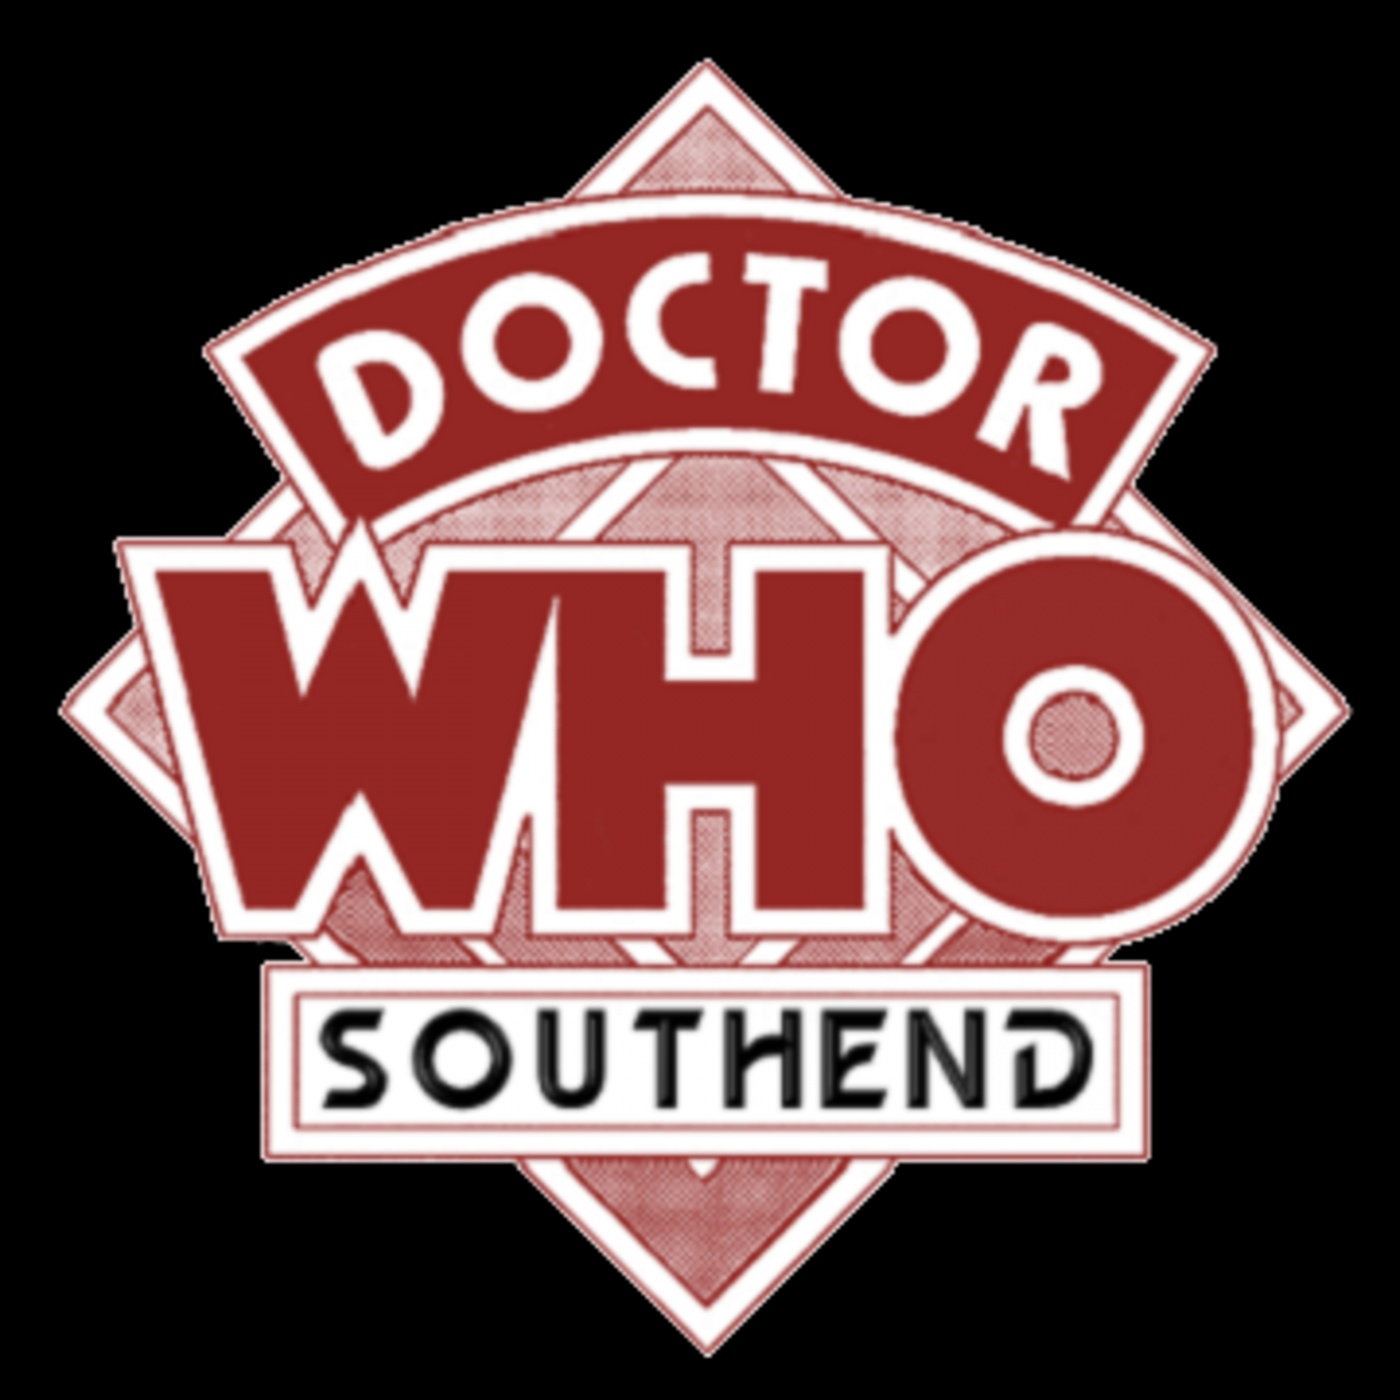 Doctor Who Southend